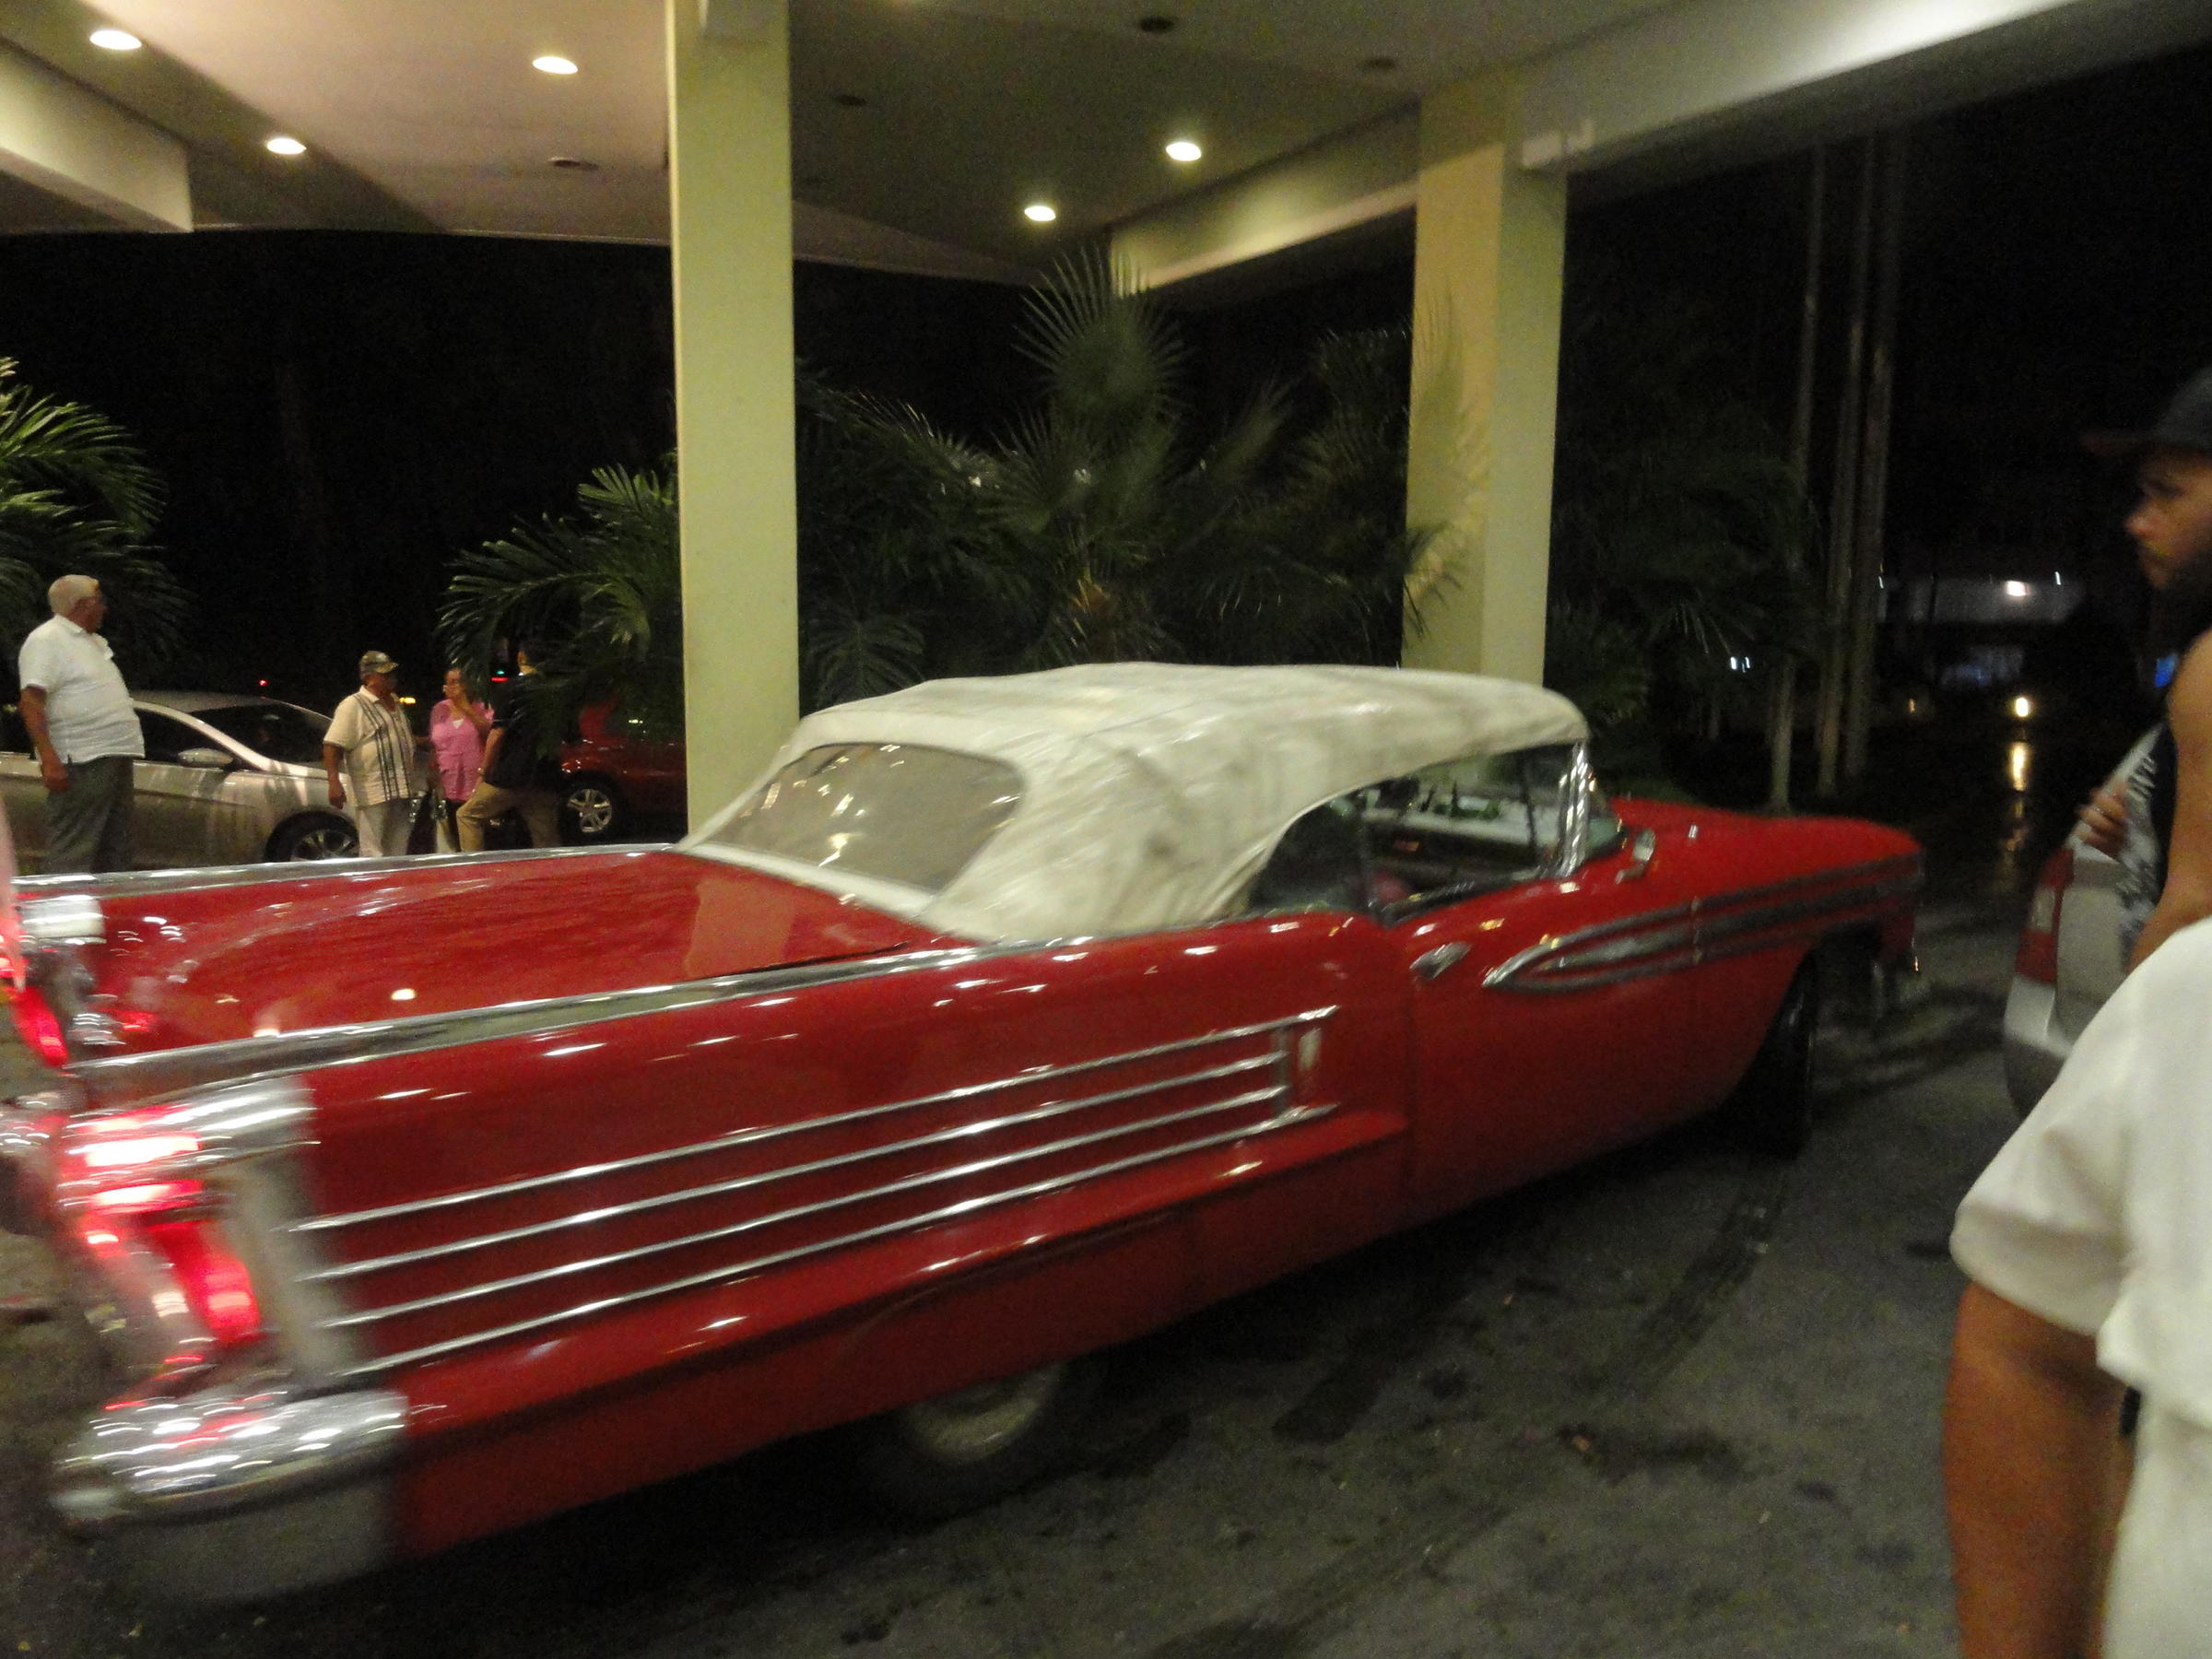 Cuba Illinoisans Look Ahead And A Look At Some Cool Cars NPR - Look at cool cars